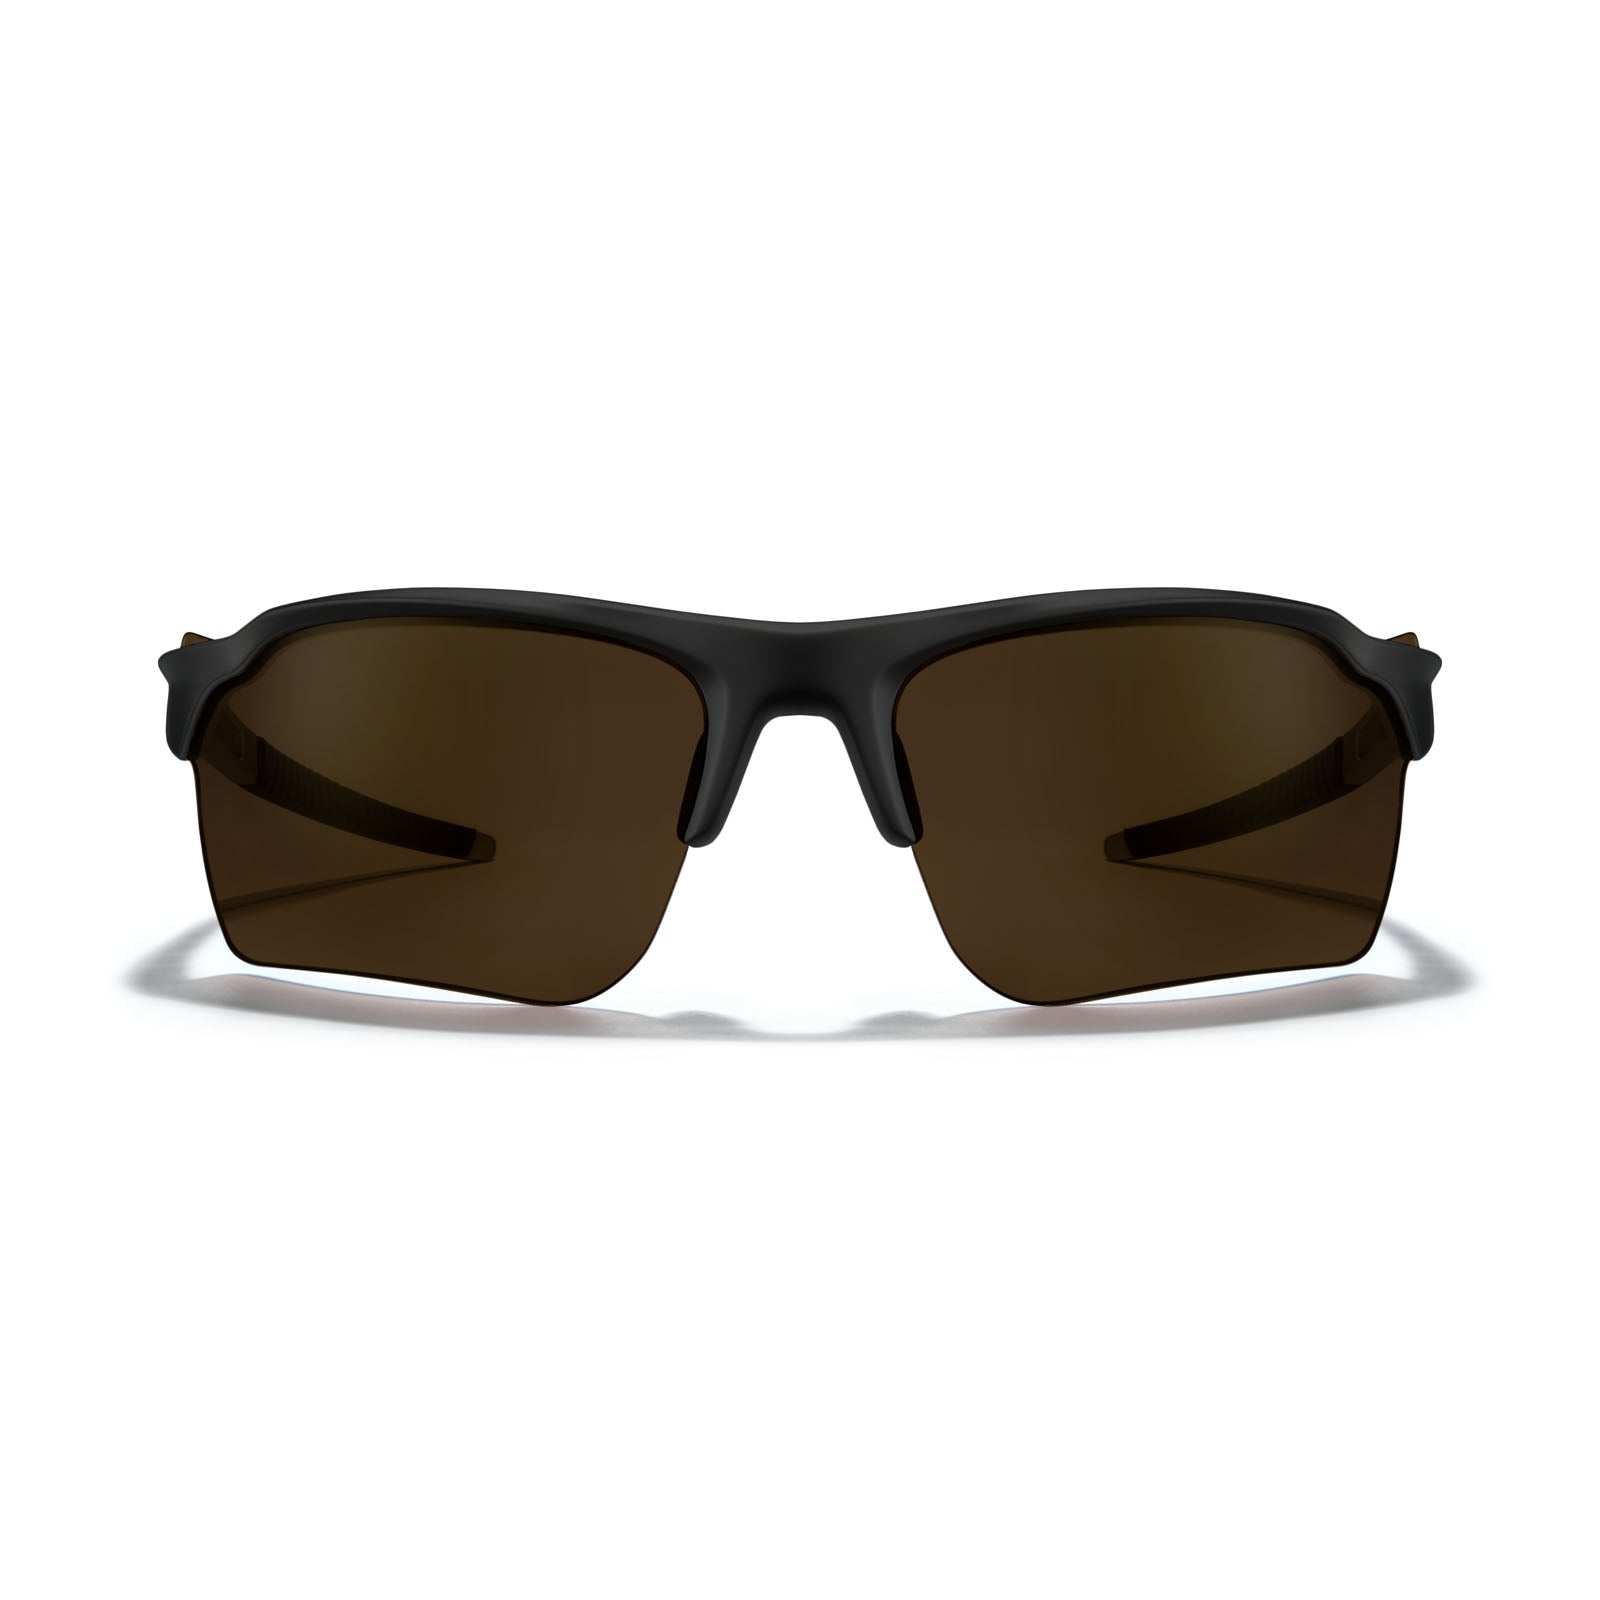 Matte Black Frame - Bronze (Polarized) Lens